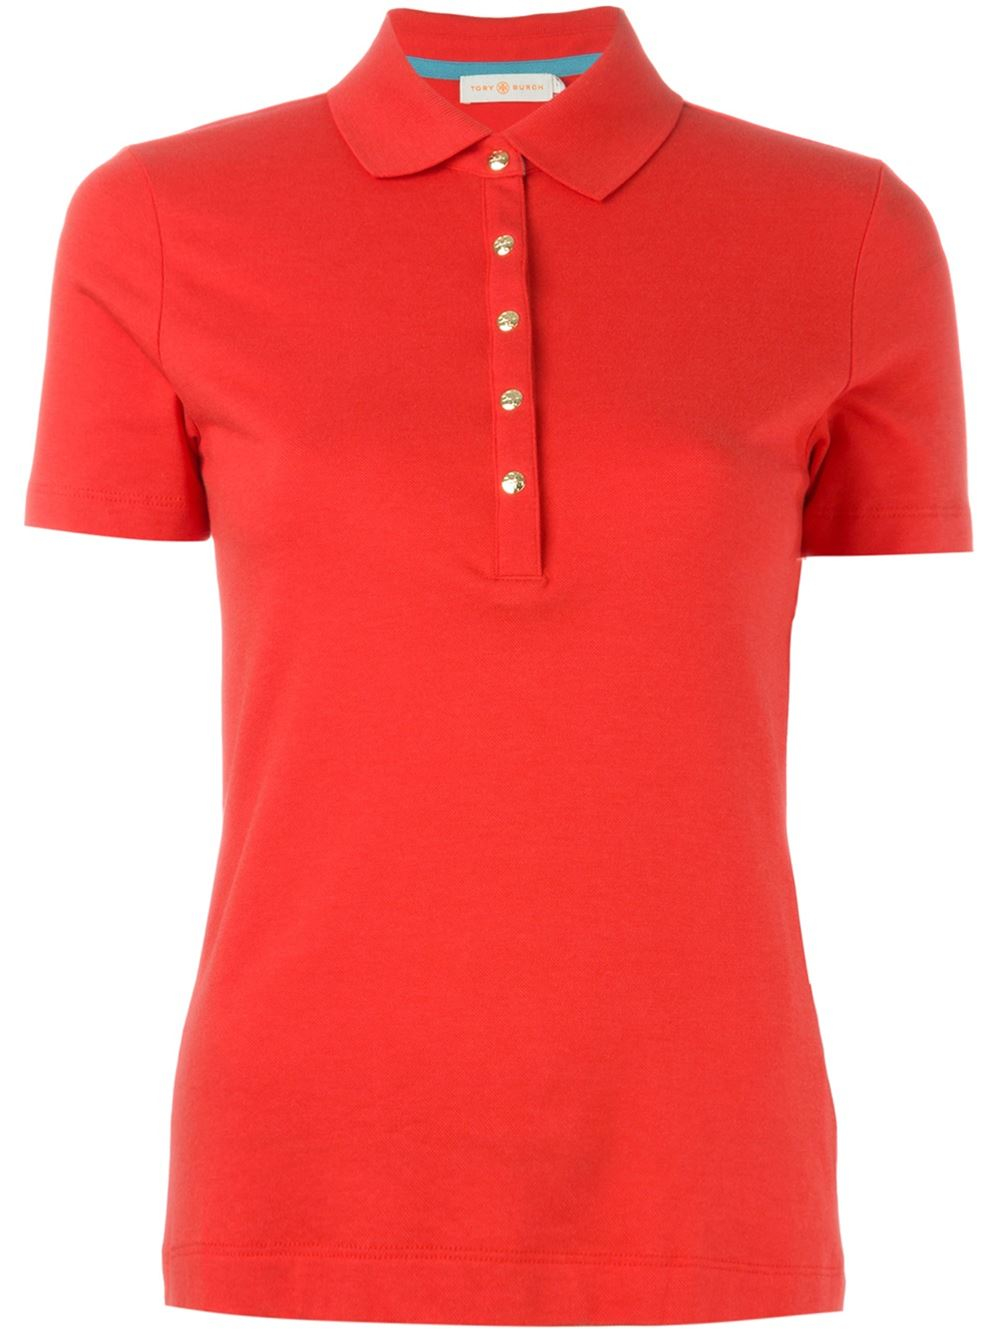 Tory Burch Classic Polo Shirt In Red Lyst